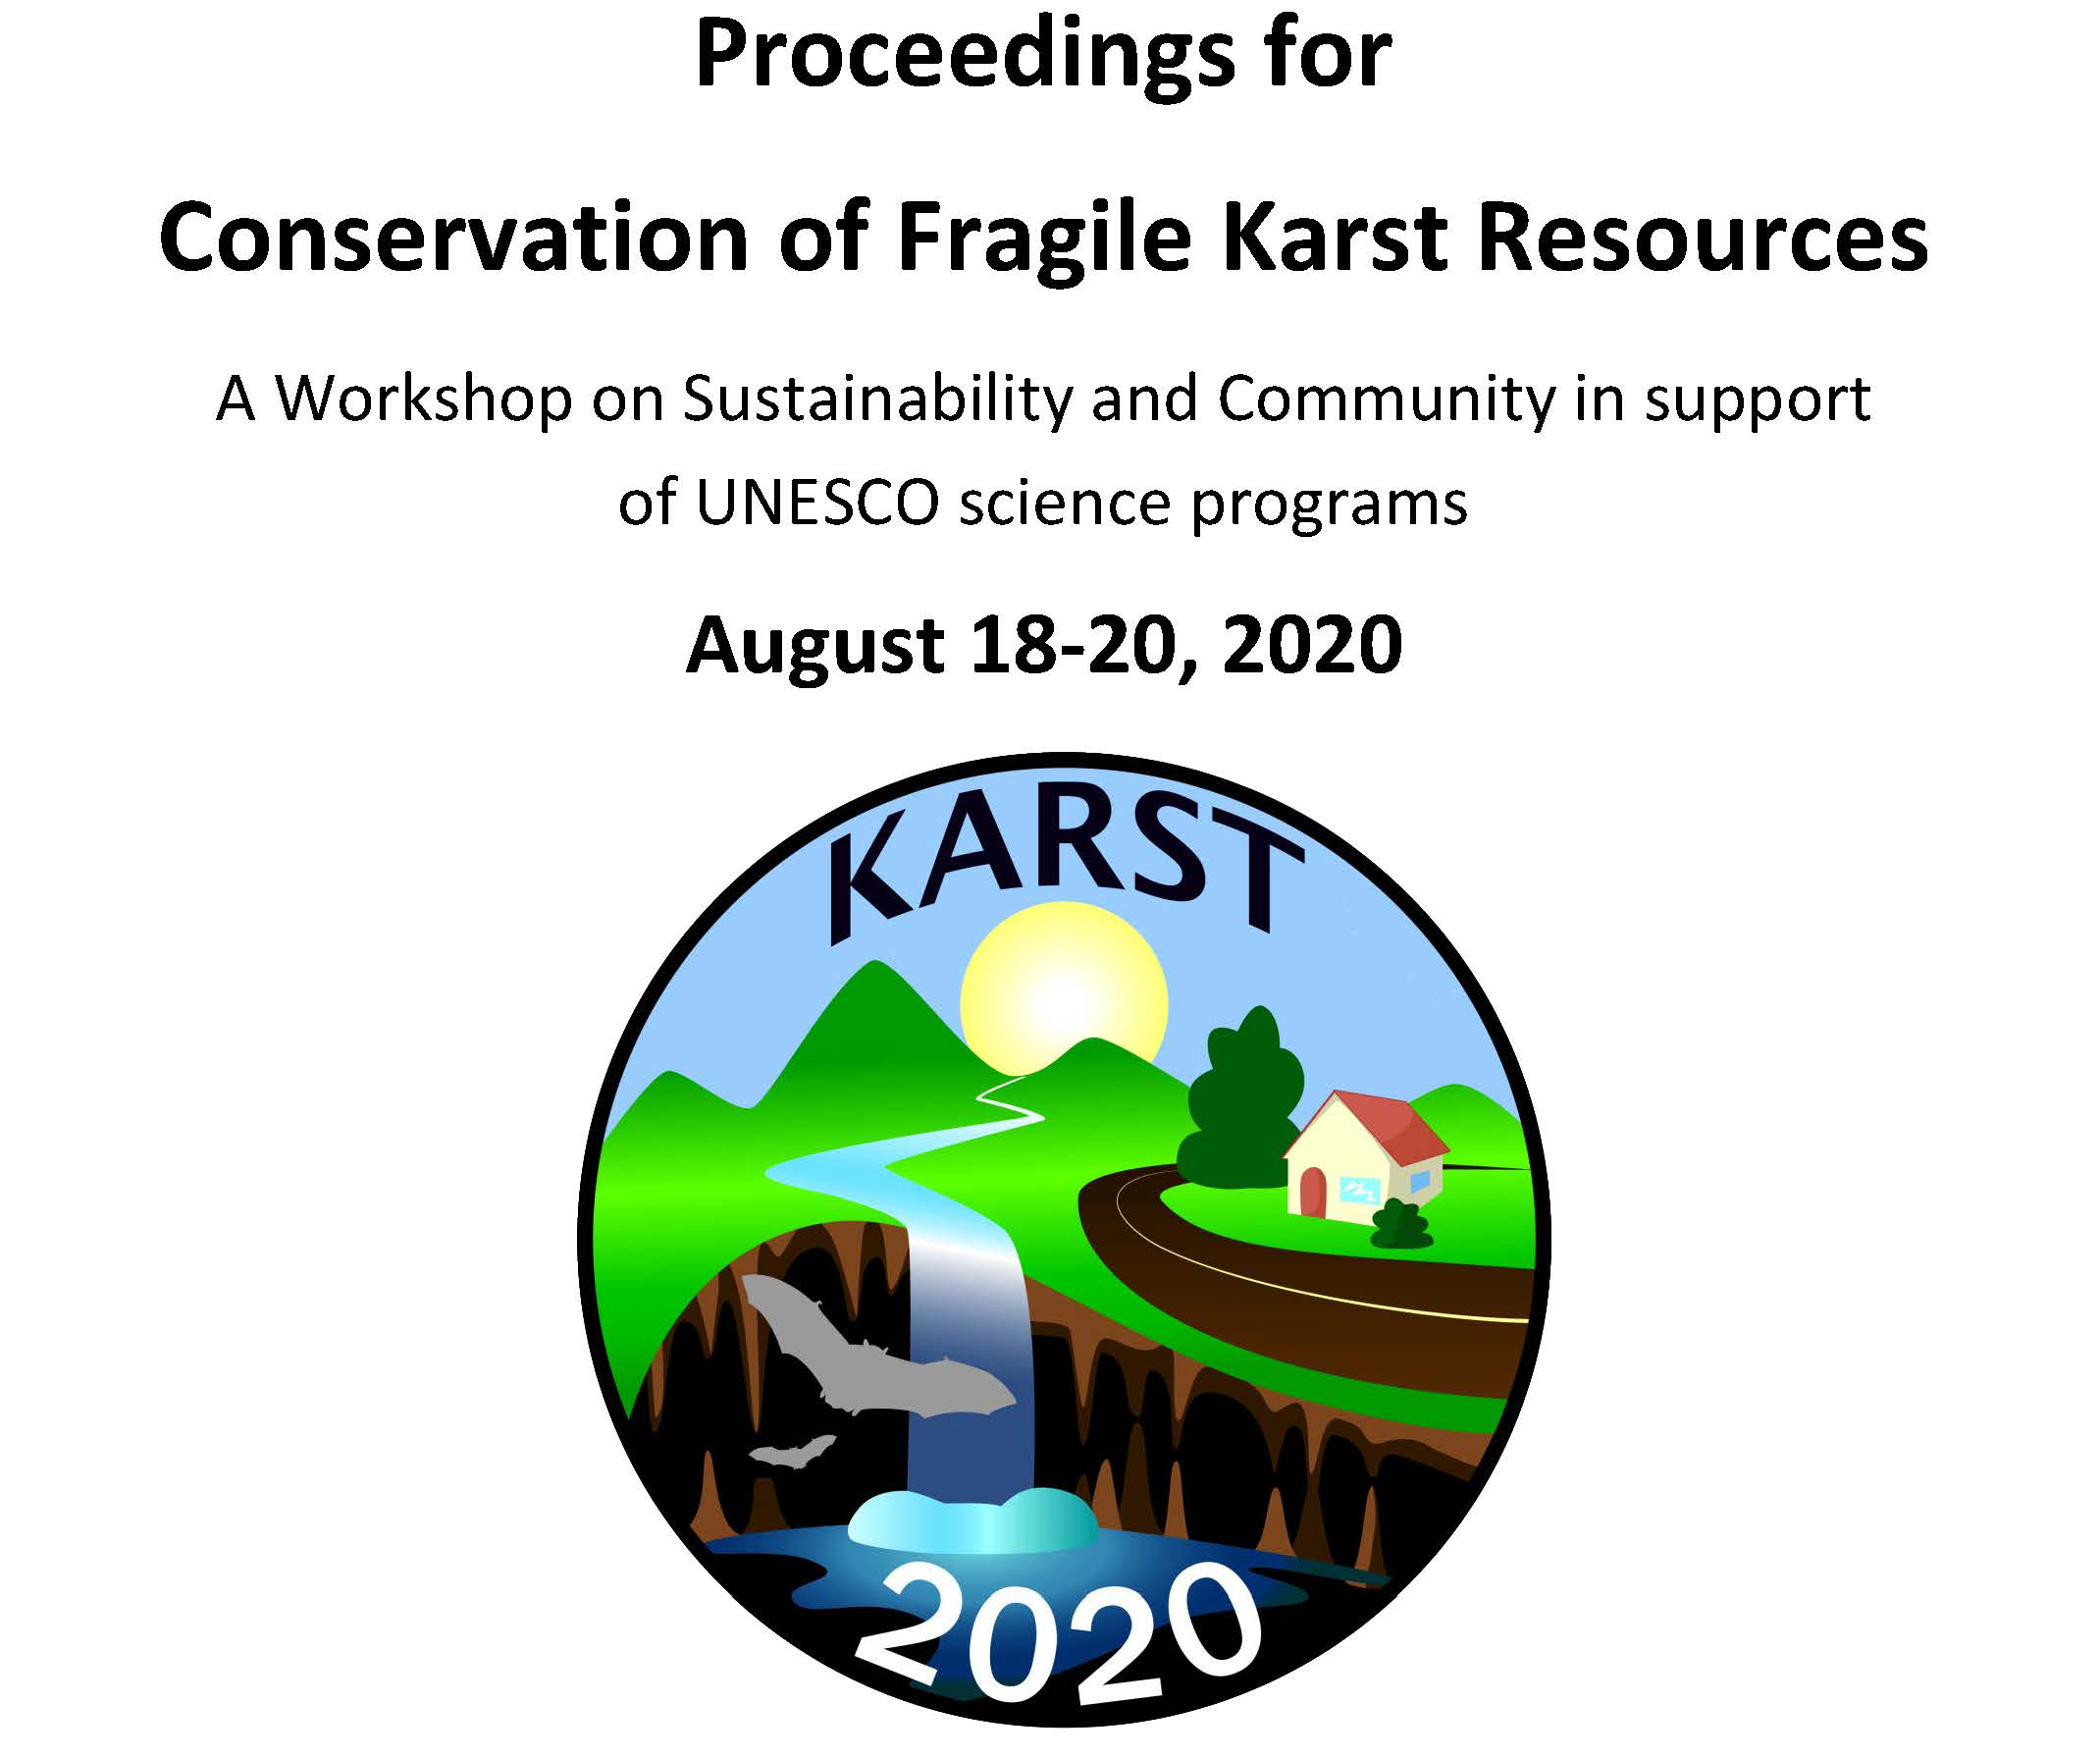 Conservation of Fragile Karst Resources Proceedings